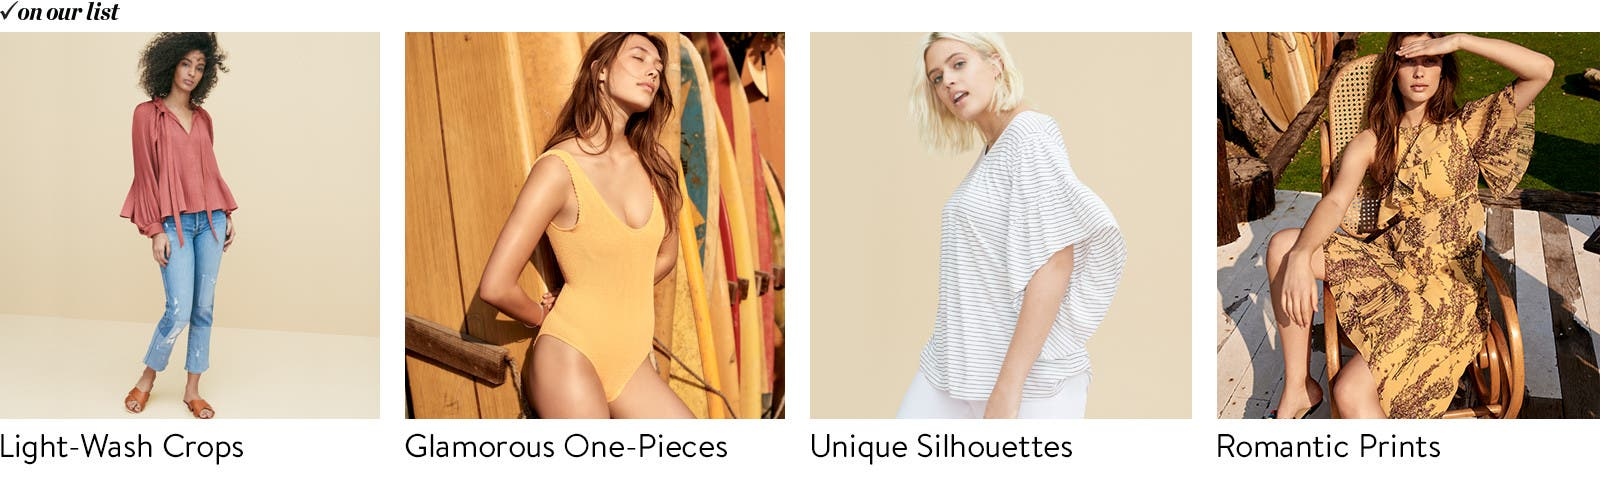 Light-wash crops. / Glamourous one-pieces. / Unique silhouettes. / Romantic prints.